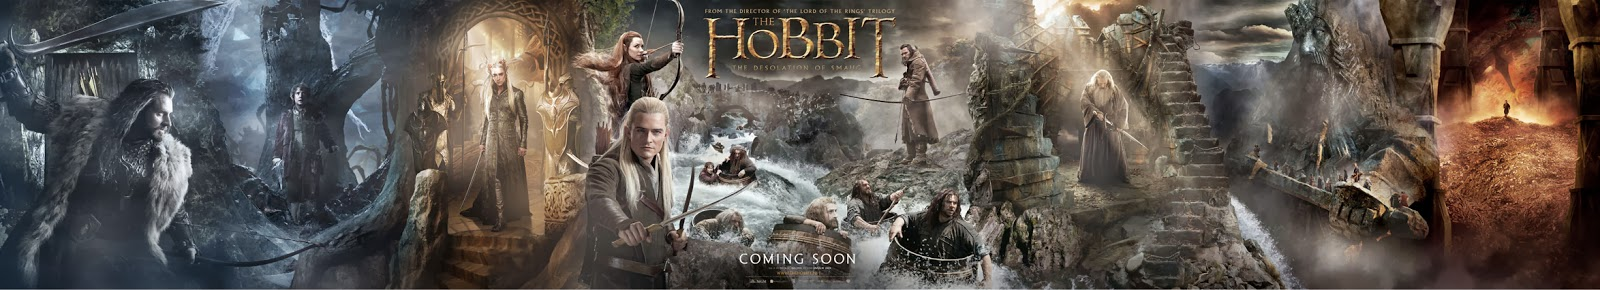 The_Hobbit_The_Desolation_Of_Smaug_New_Mega_Banner_Baja_JPosters